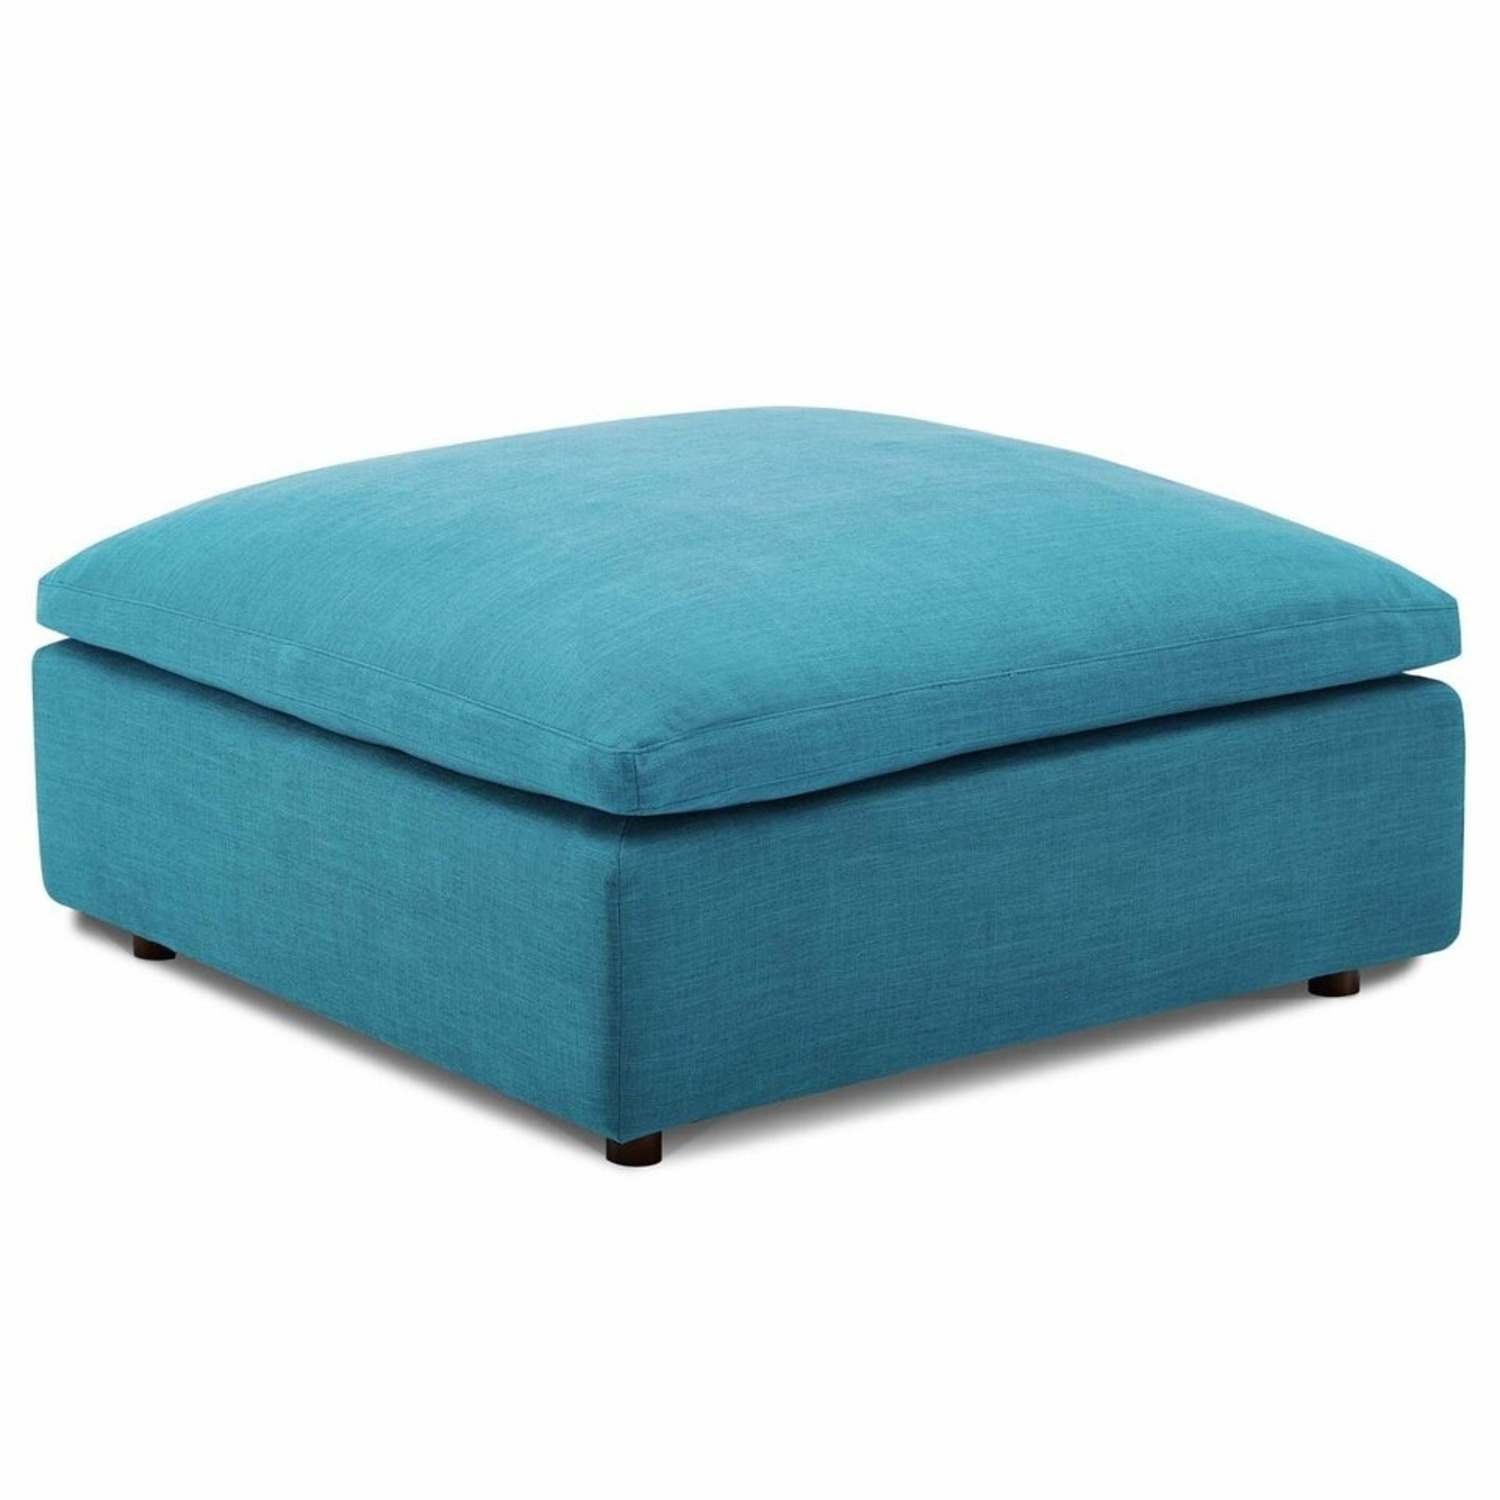 6-Piece Sectional Sofa In Teal Linen Fabric - image-6